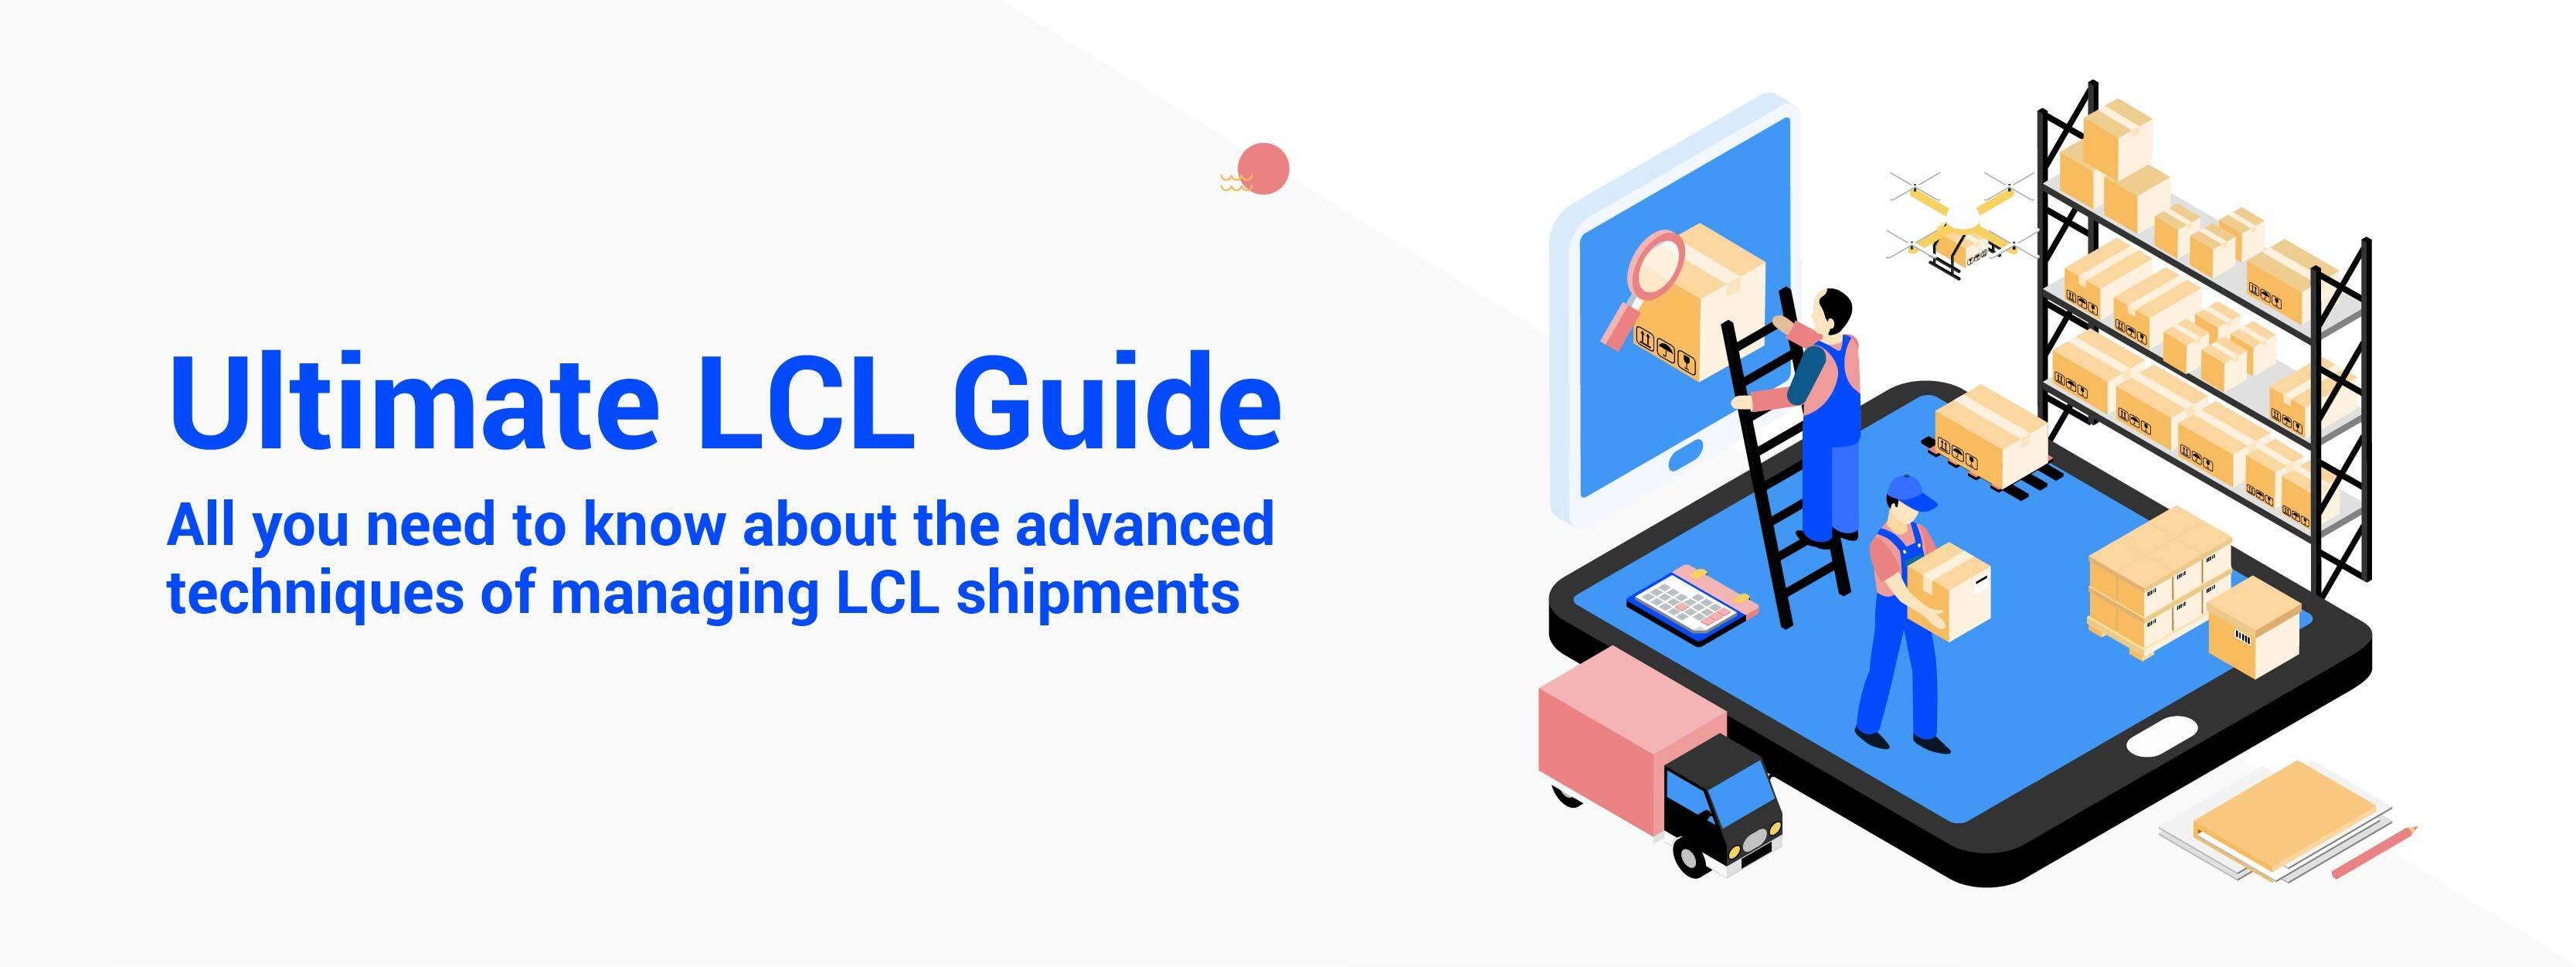 Complete Guide to LCL Shipping: Everything Exporters/Importers Need to Know